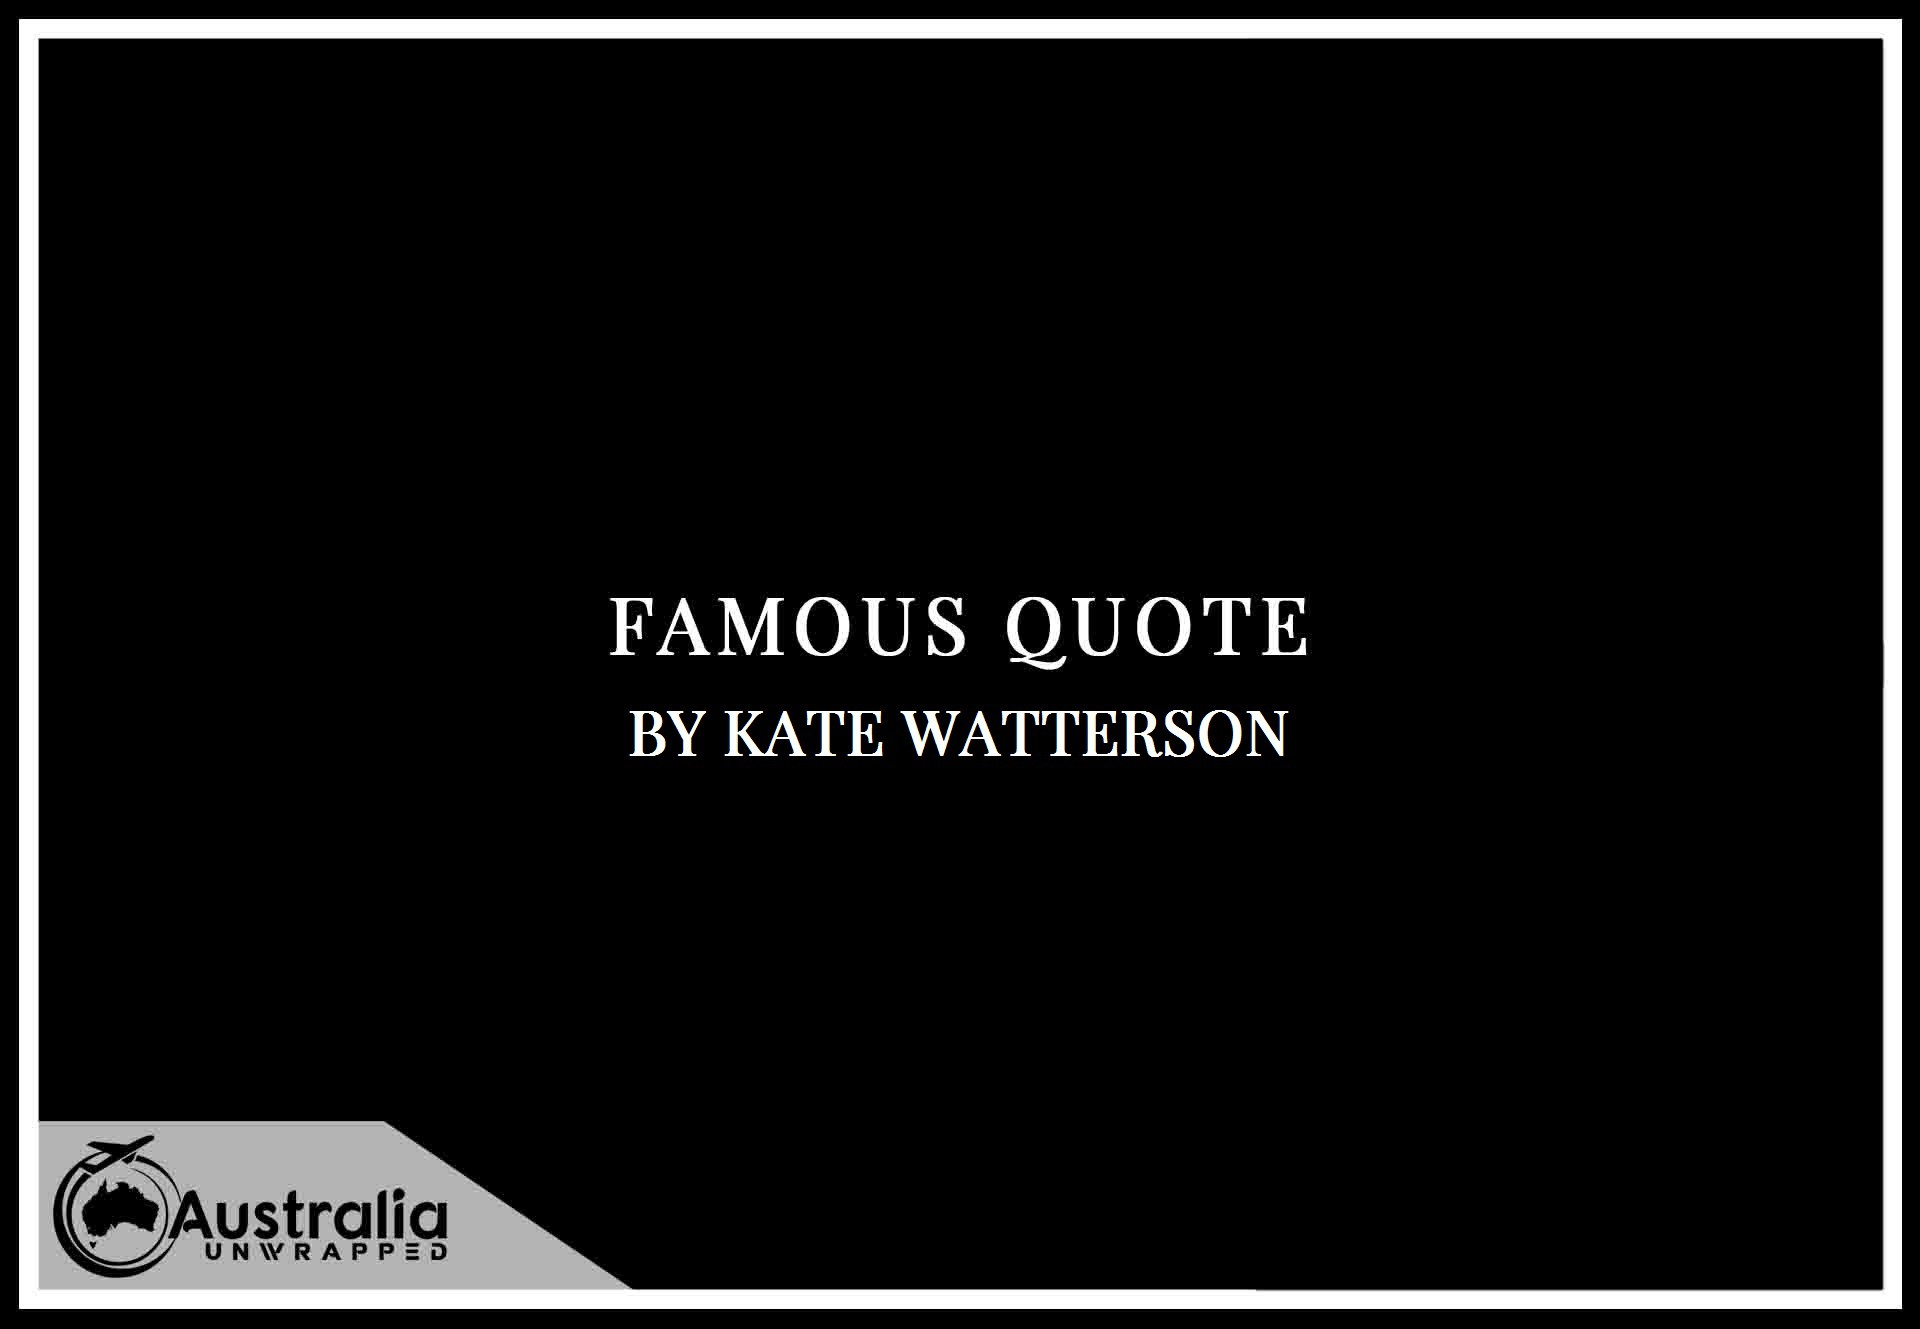 Kate Watterson's Top 1 Popular and Famous Quotes